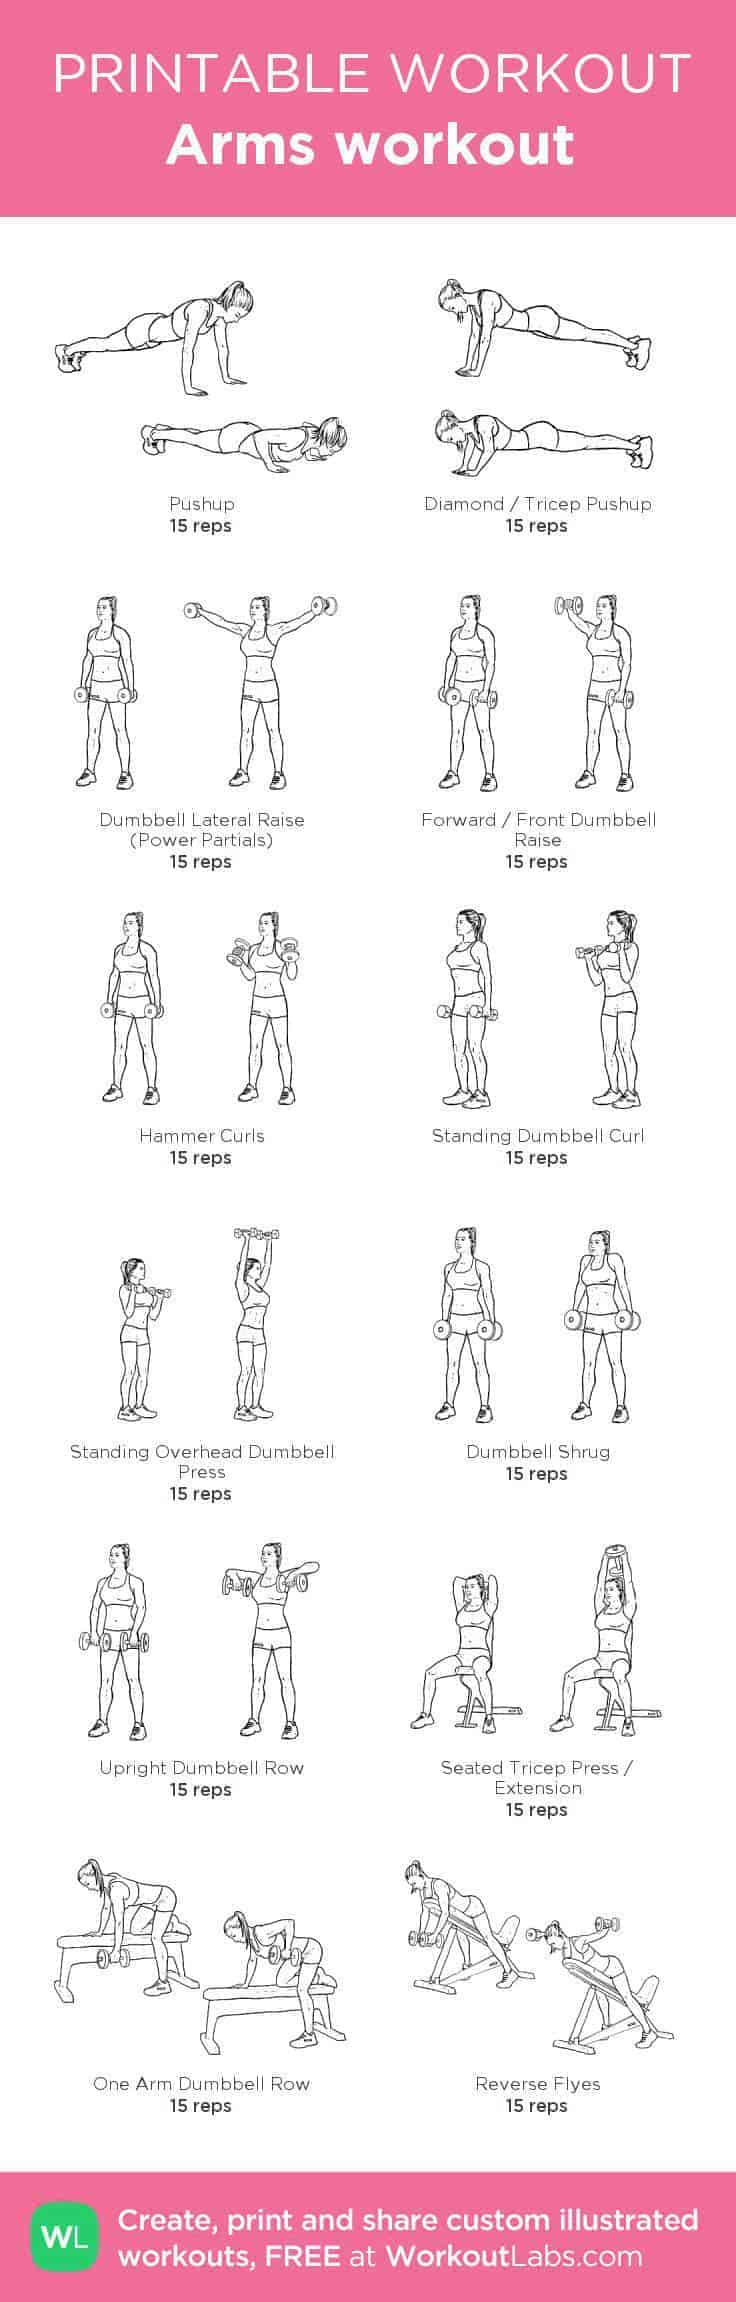 women's arm workout